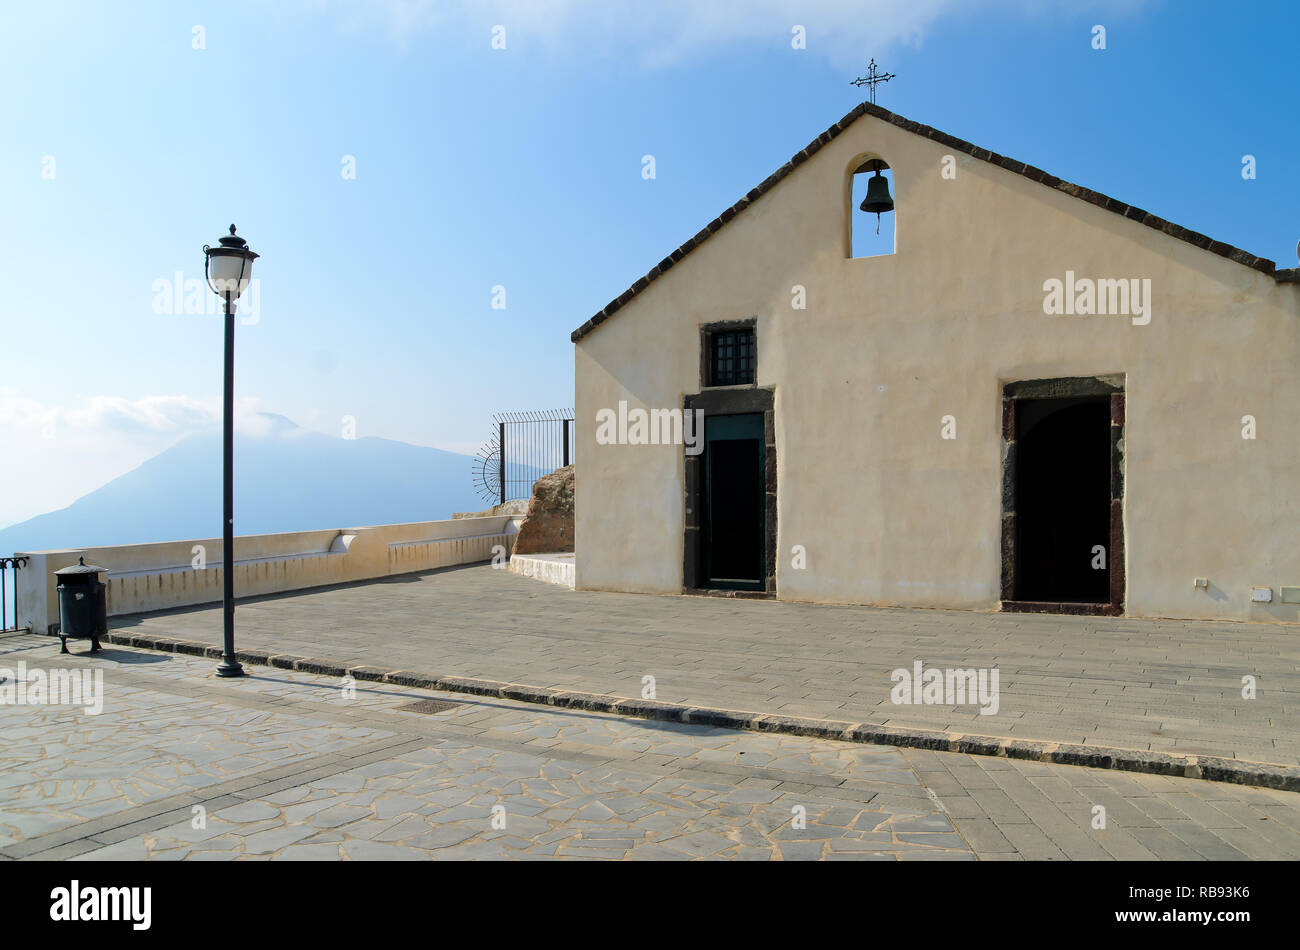 Sanctuary of the Holy Virgin, old church in Quattropani, Lipari, with amazing panoramic views over the Tyrrhenian sea and the Aeolian Archipelago. Stock Photo